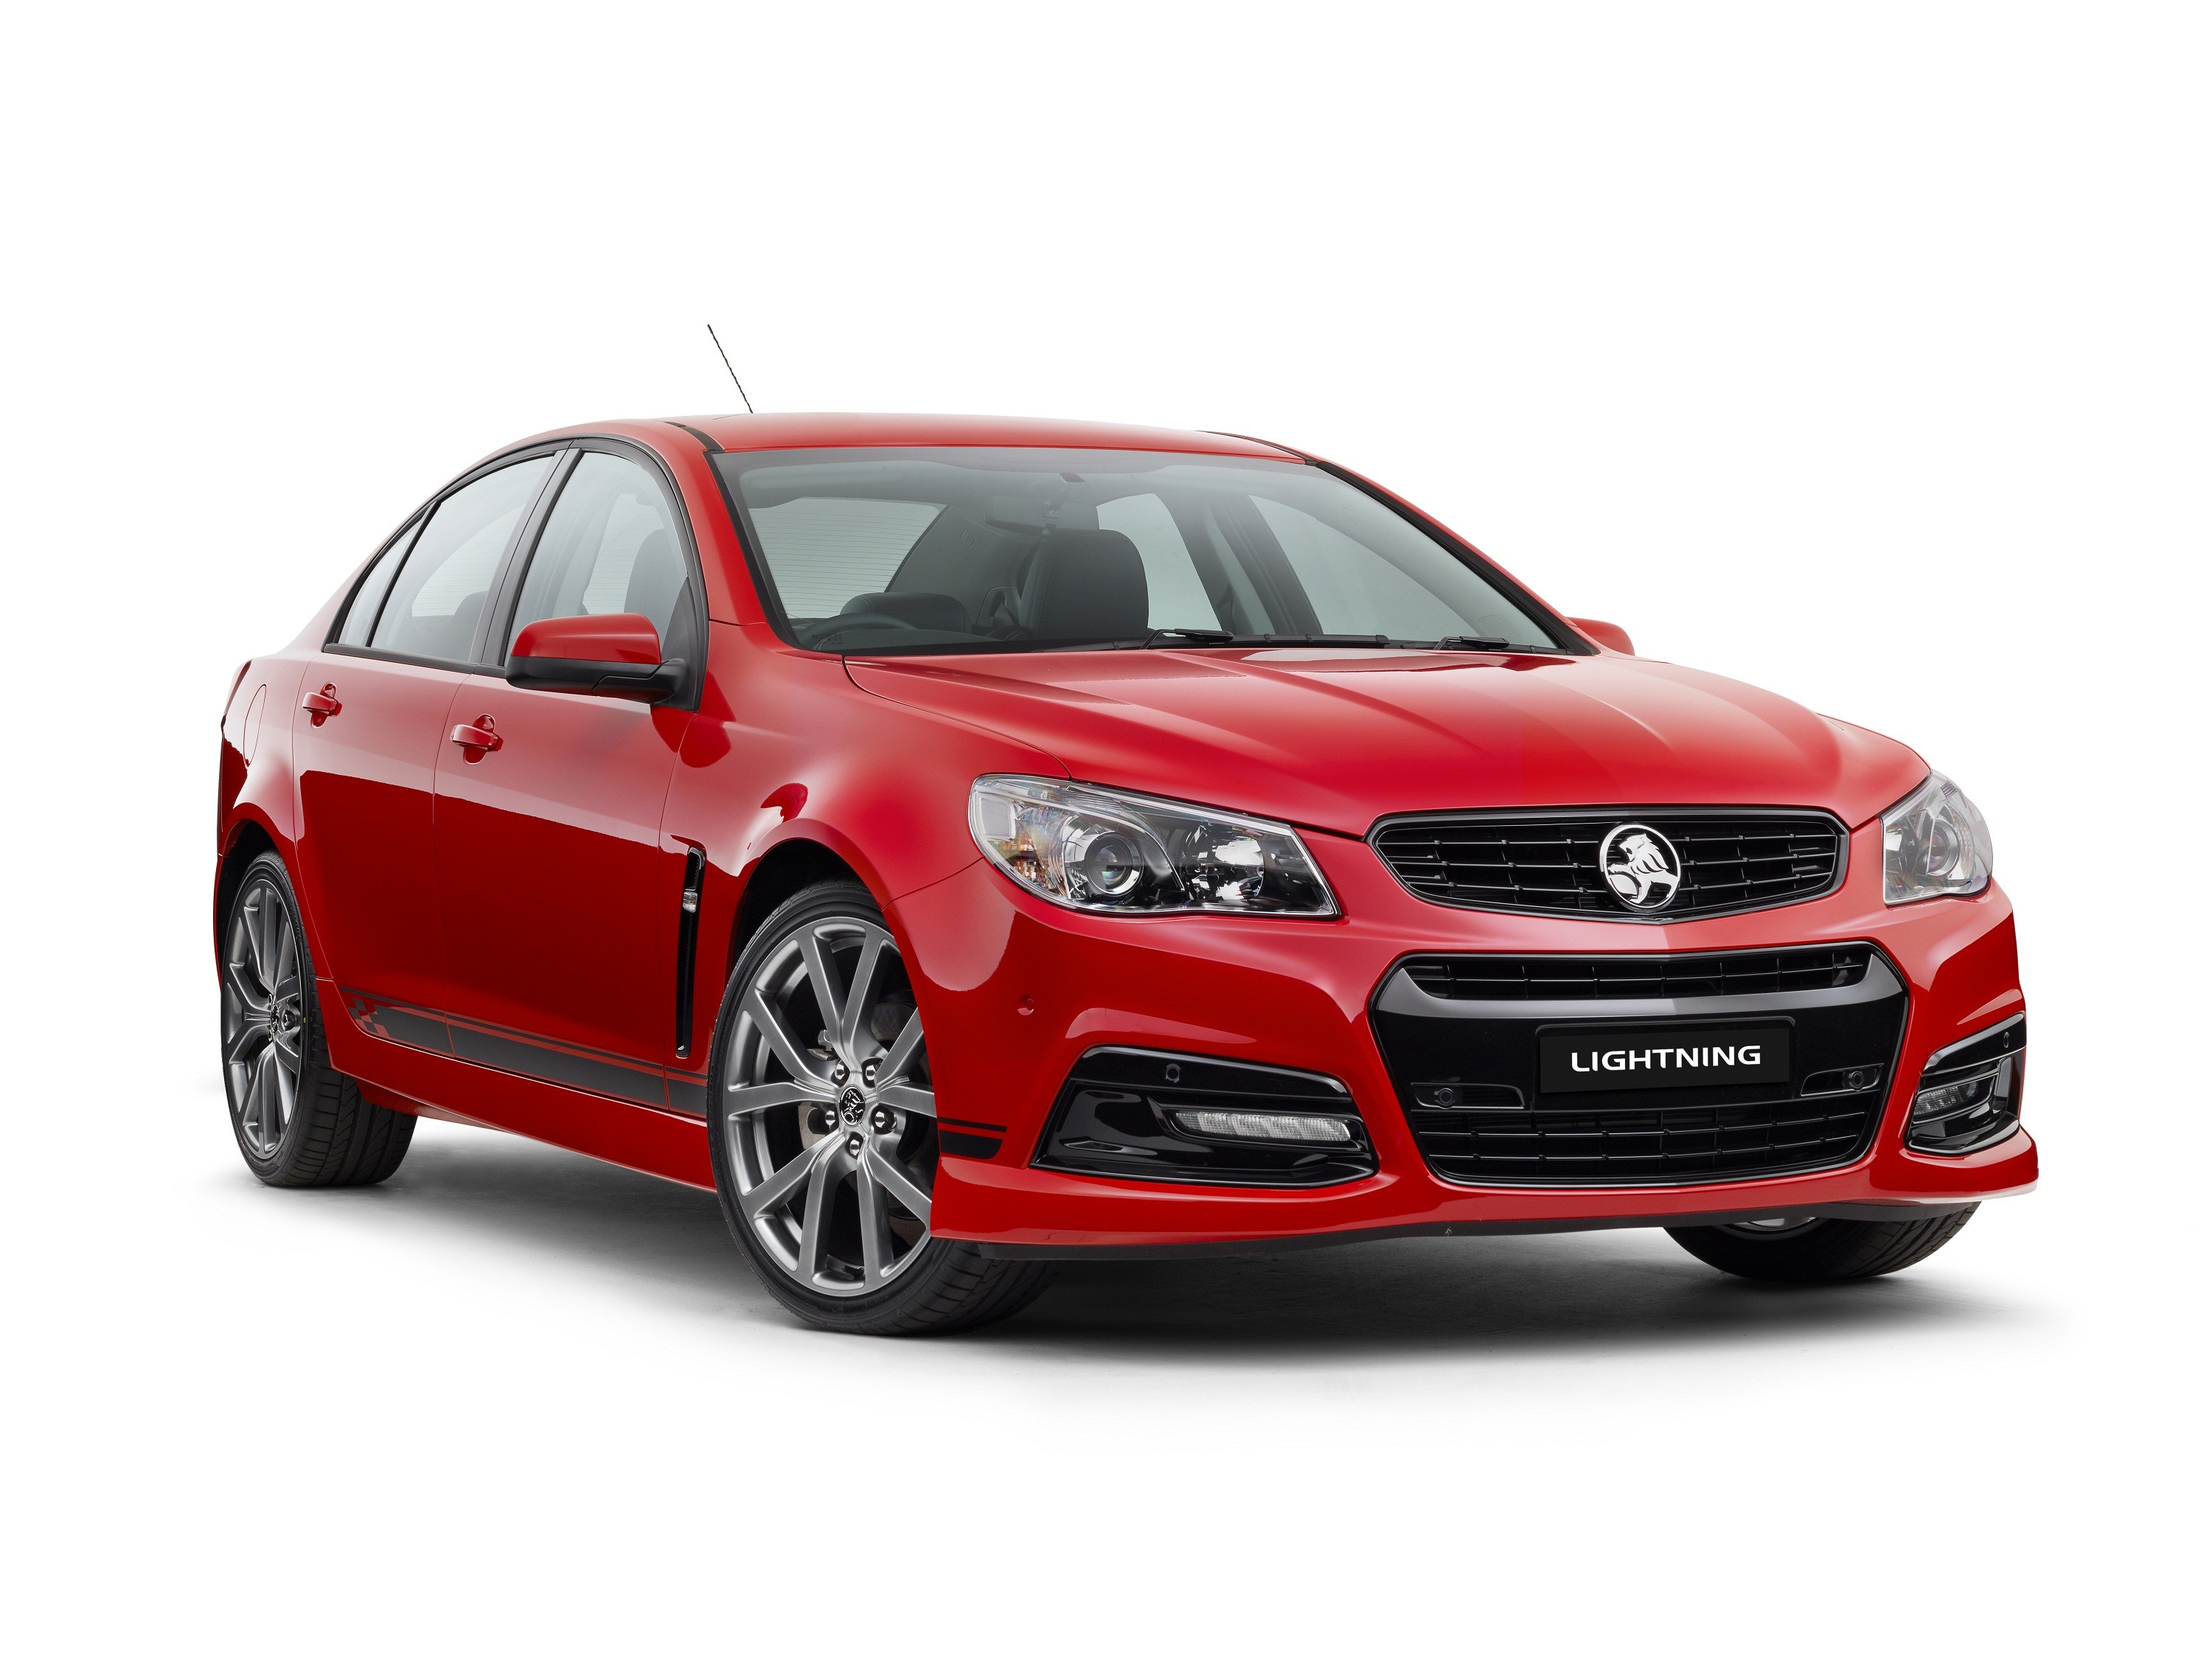 2015 Holden Vf Commodore Sv6 Lightning Sedan Amp Sv6